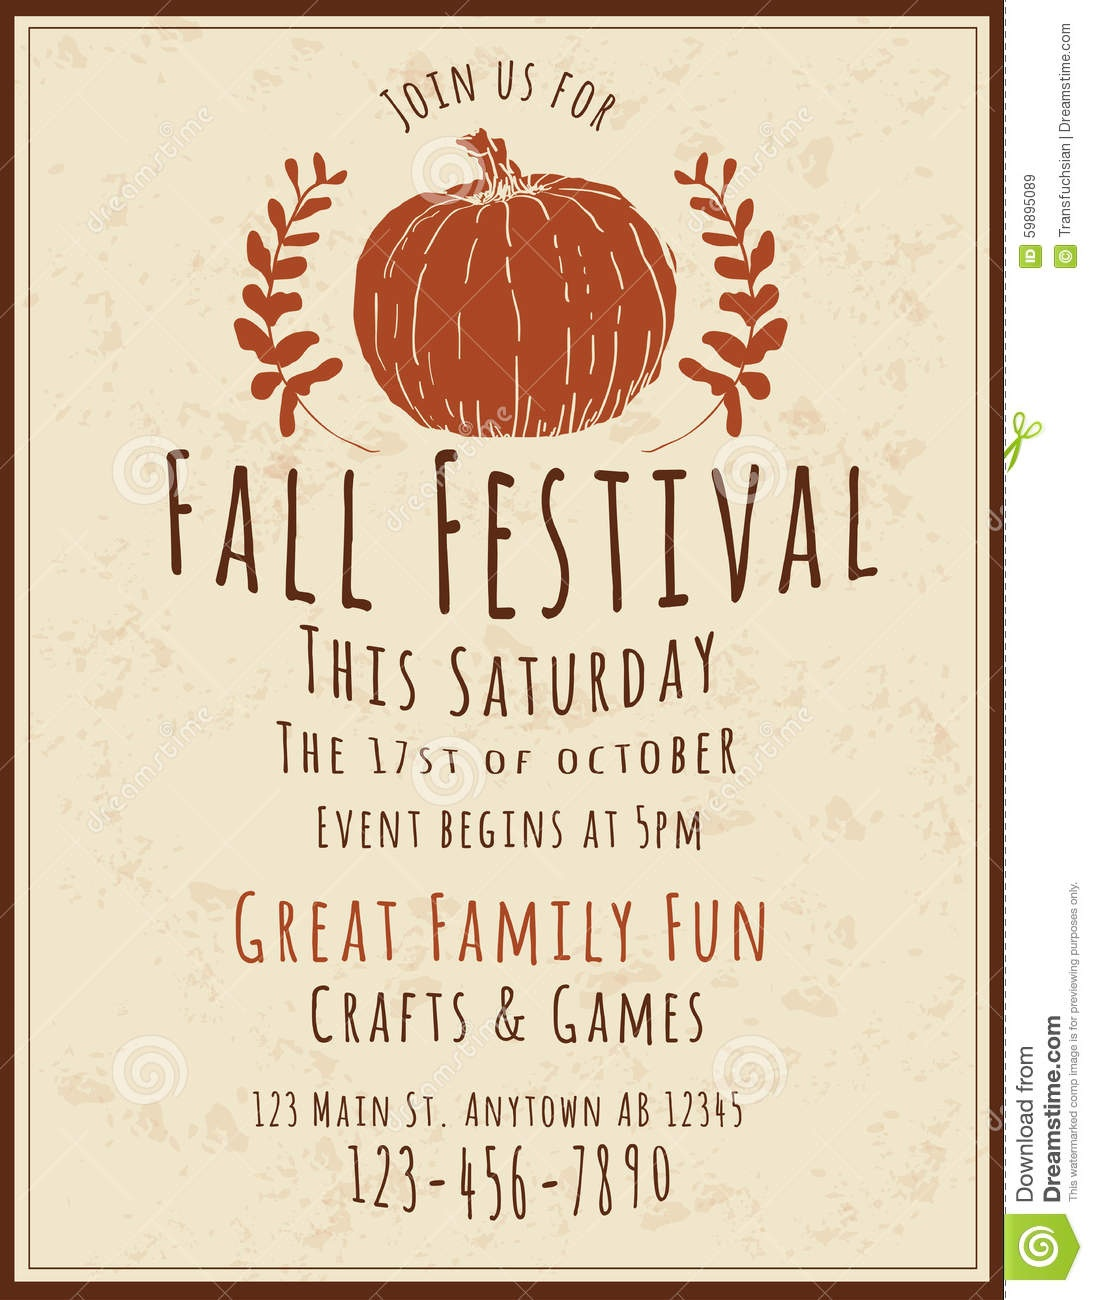 003 Fall Festival Flyers Templates Flyer Template Simple Retro Hand - Free Printable Fall Festival Flyer Templates